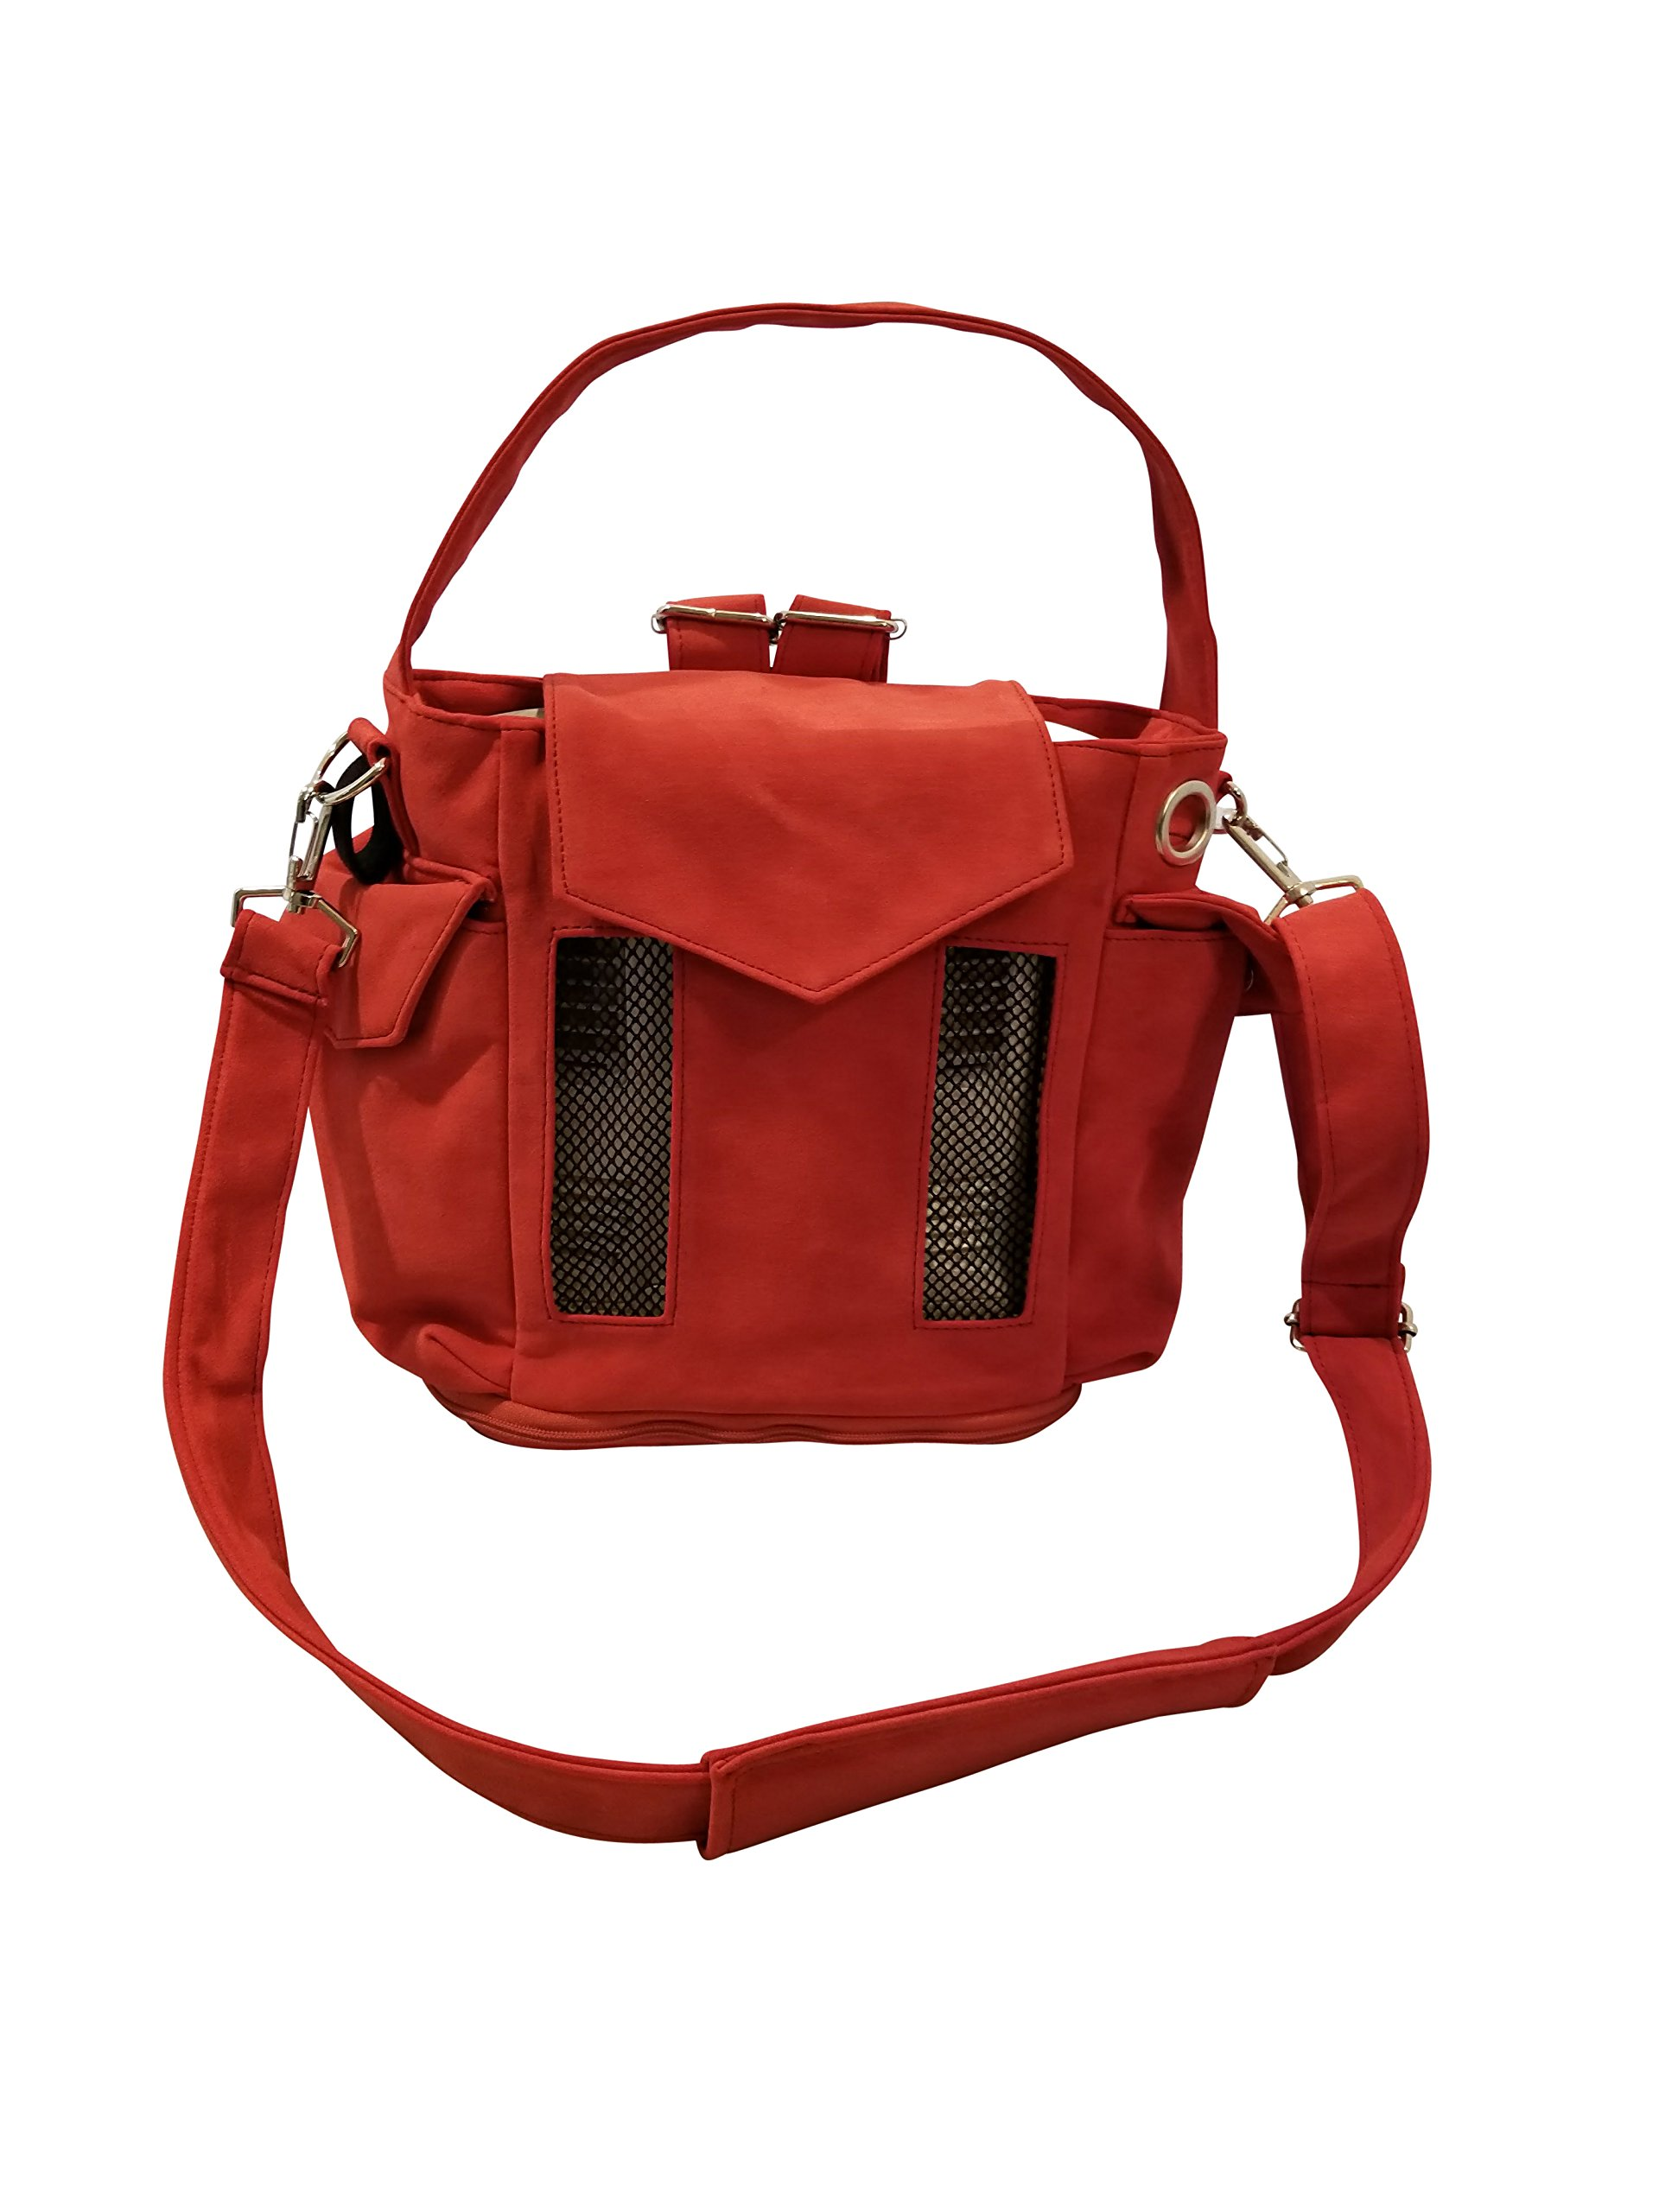 Carry Bag for Inogen One G3 with pockets for keys, wallet, cords & more!